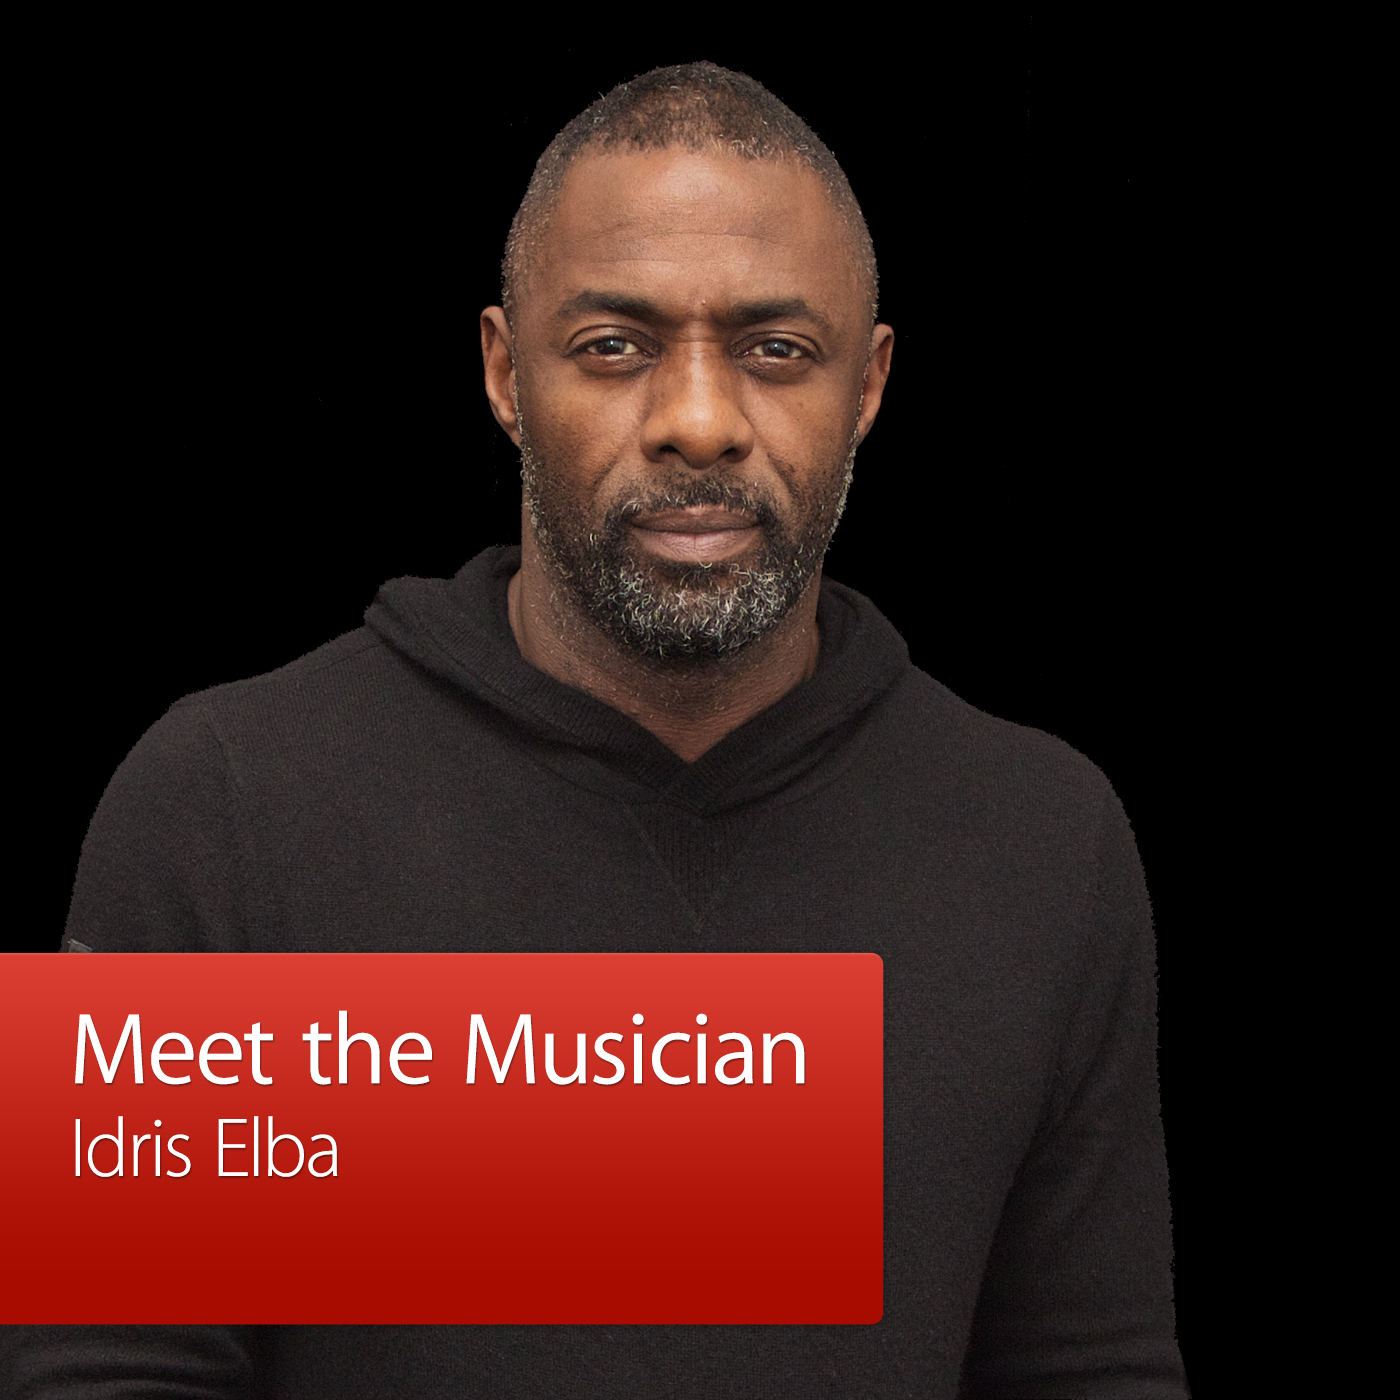 Idris Elba: Meet the Musician